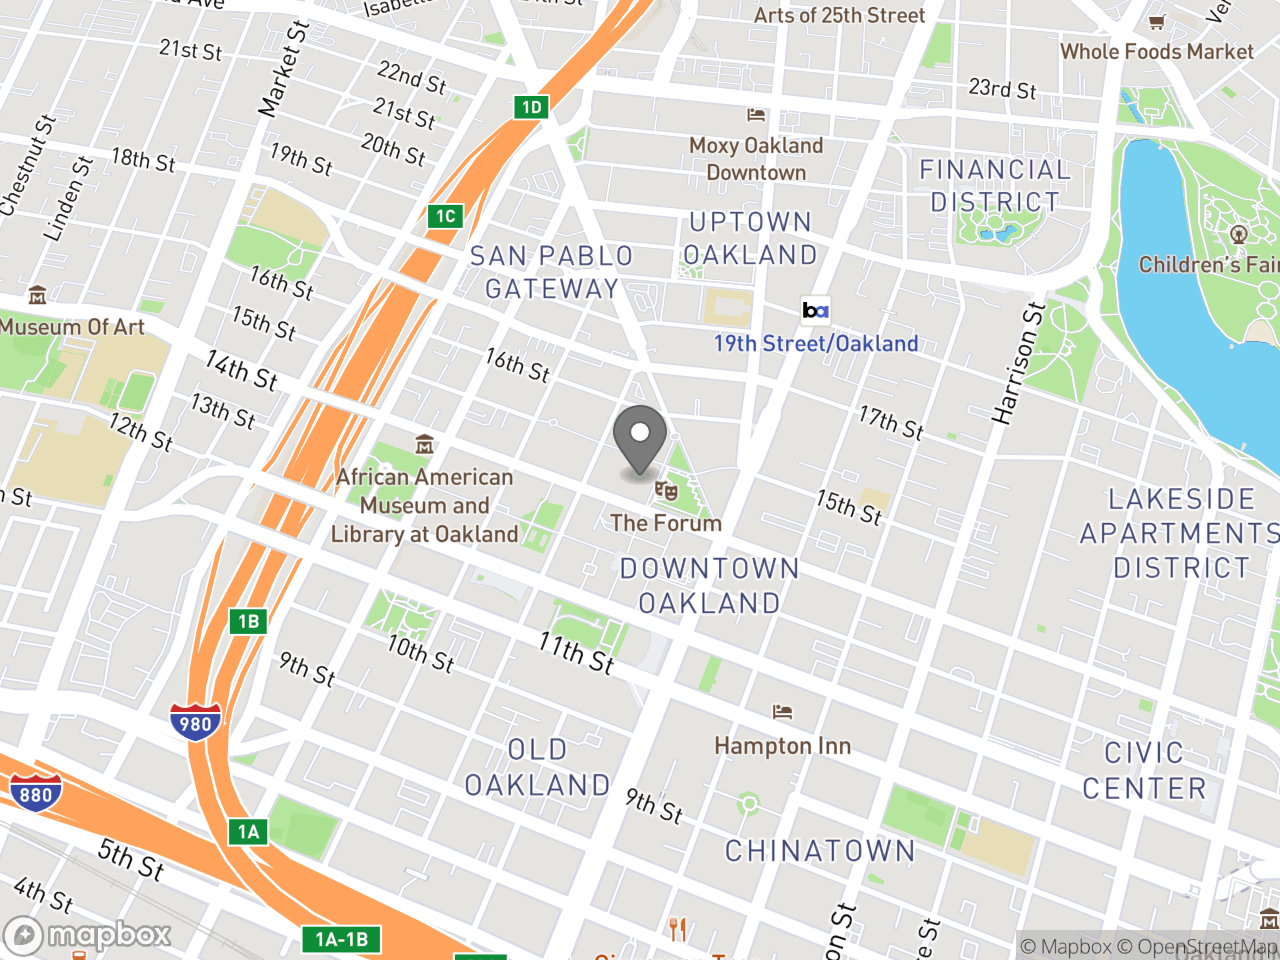 Map image for Rent Board Panel Meeting September 13, 2018, located at 1 Frank H Ogawa Plaza in Oakland, CA 94612